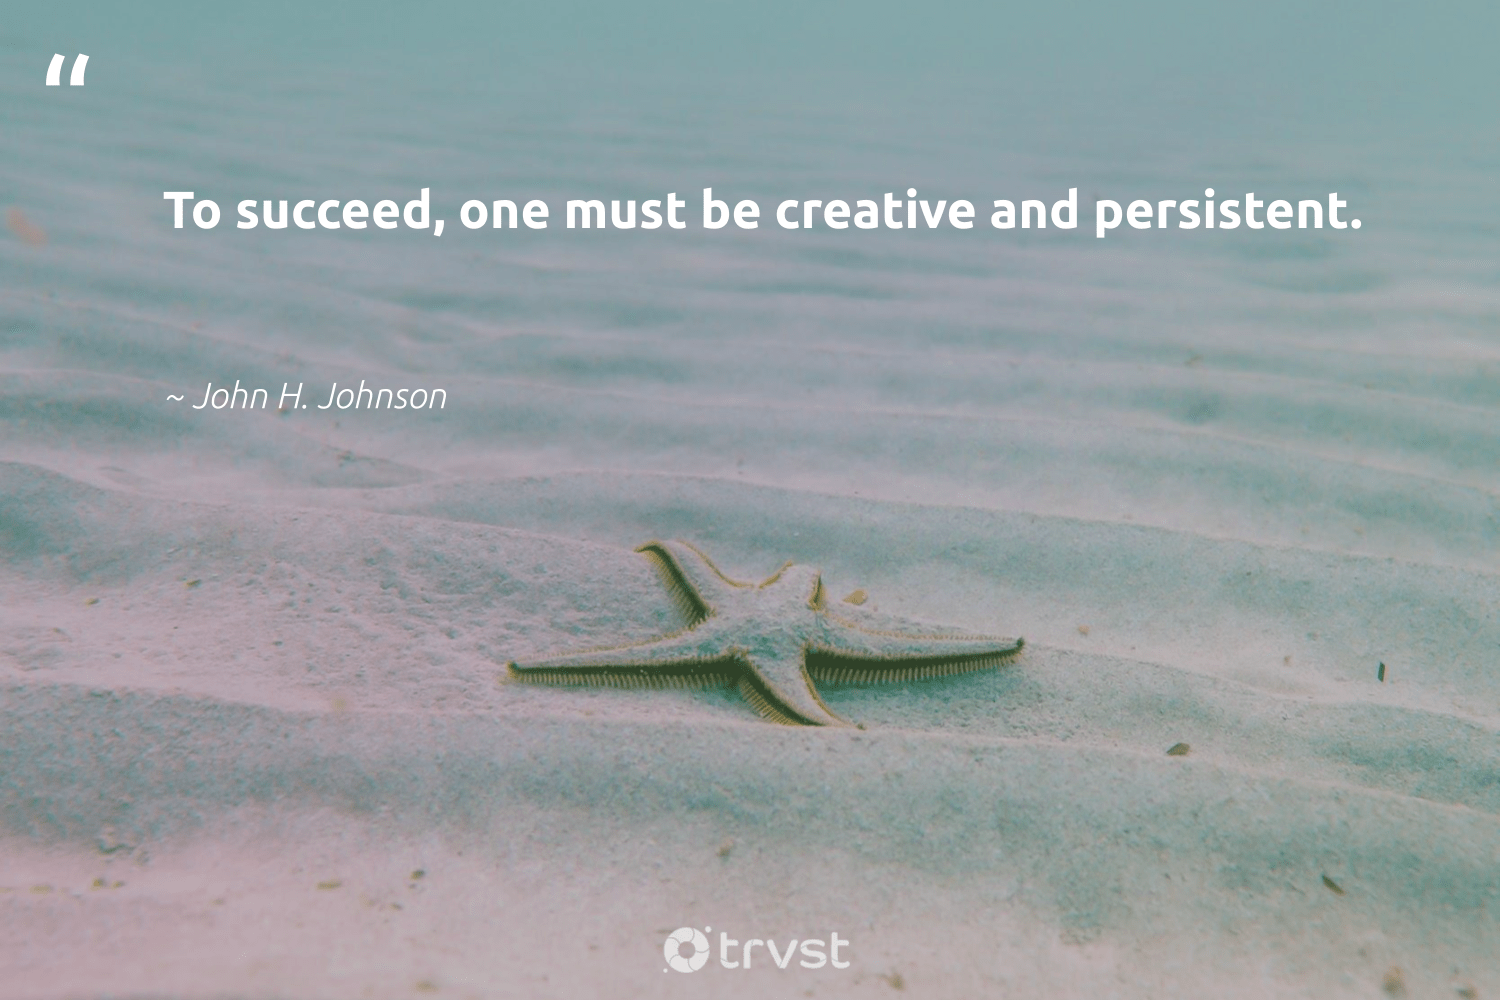 """To succeed, one must be creative and persistent.""  - John H. Johnson #trvst #quotes #creativity #creative #sketchbook #softskills #nevergiveup #beinspired #begreat #futureofwork #dotherightthing #designinspiration"